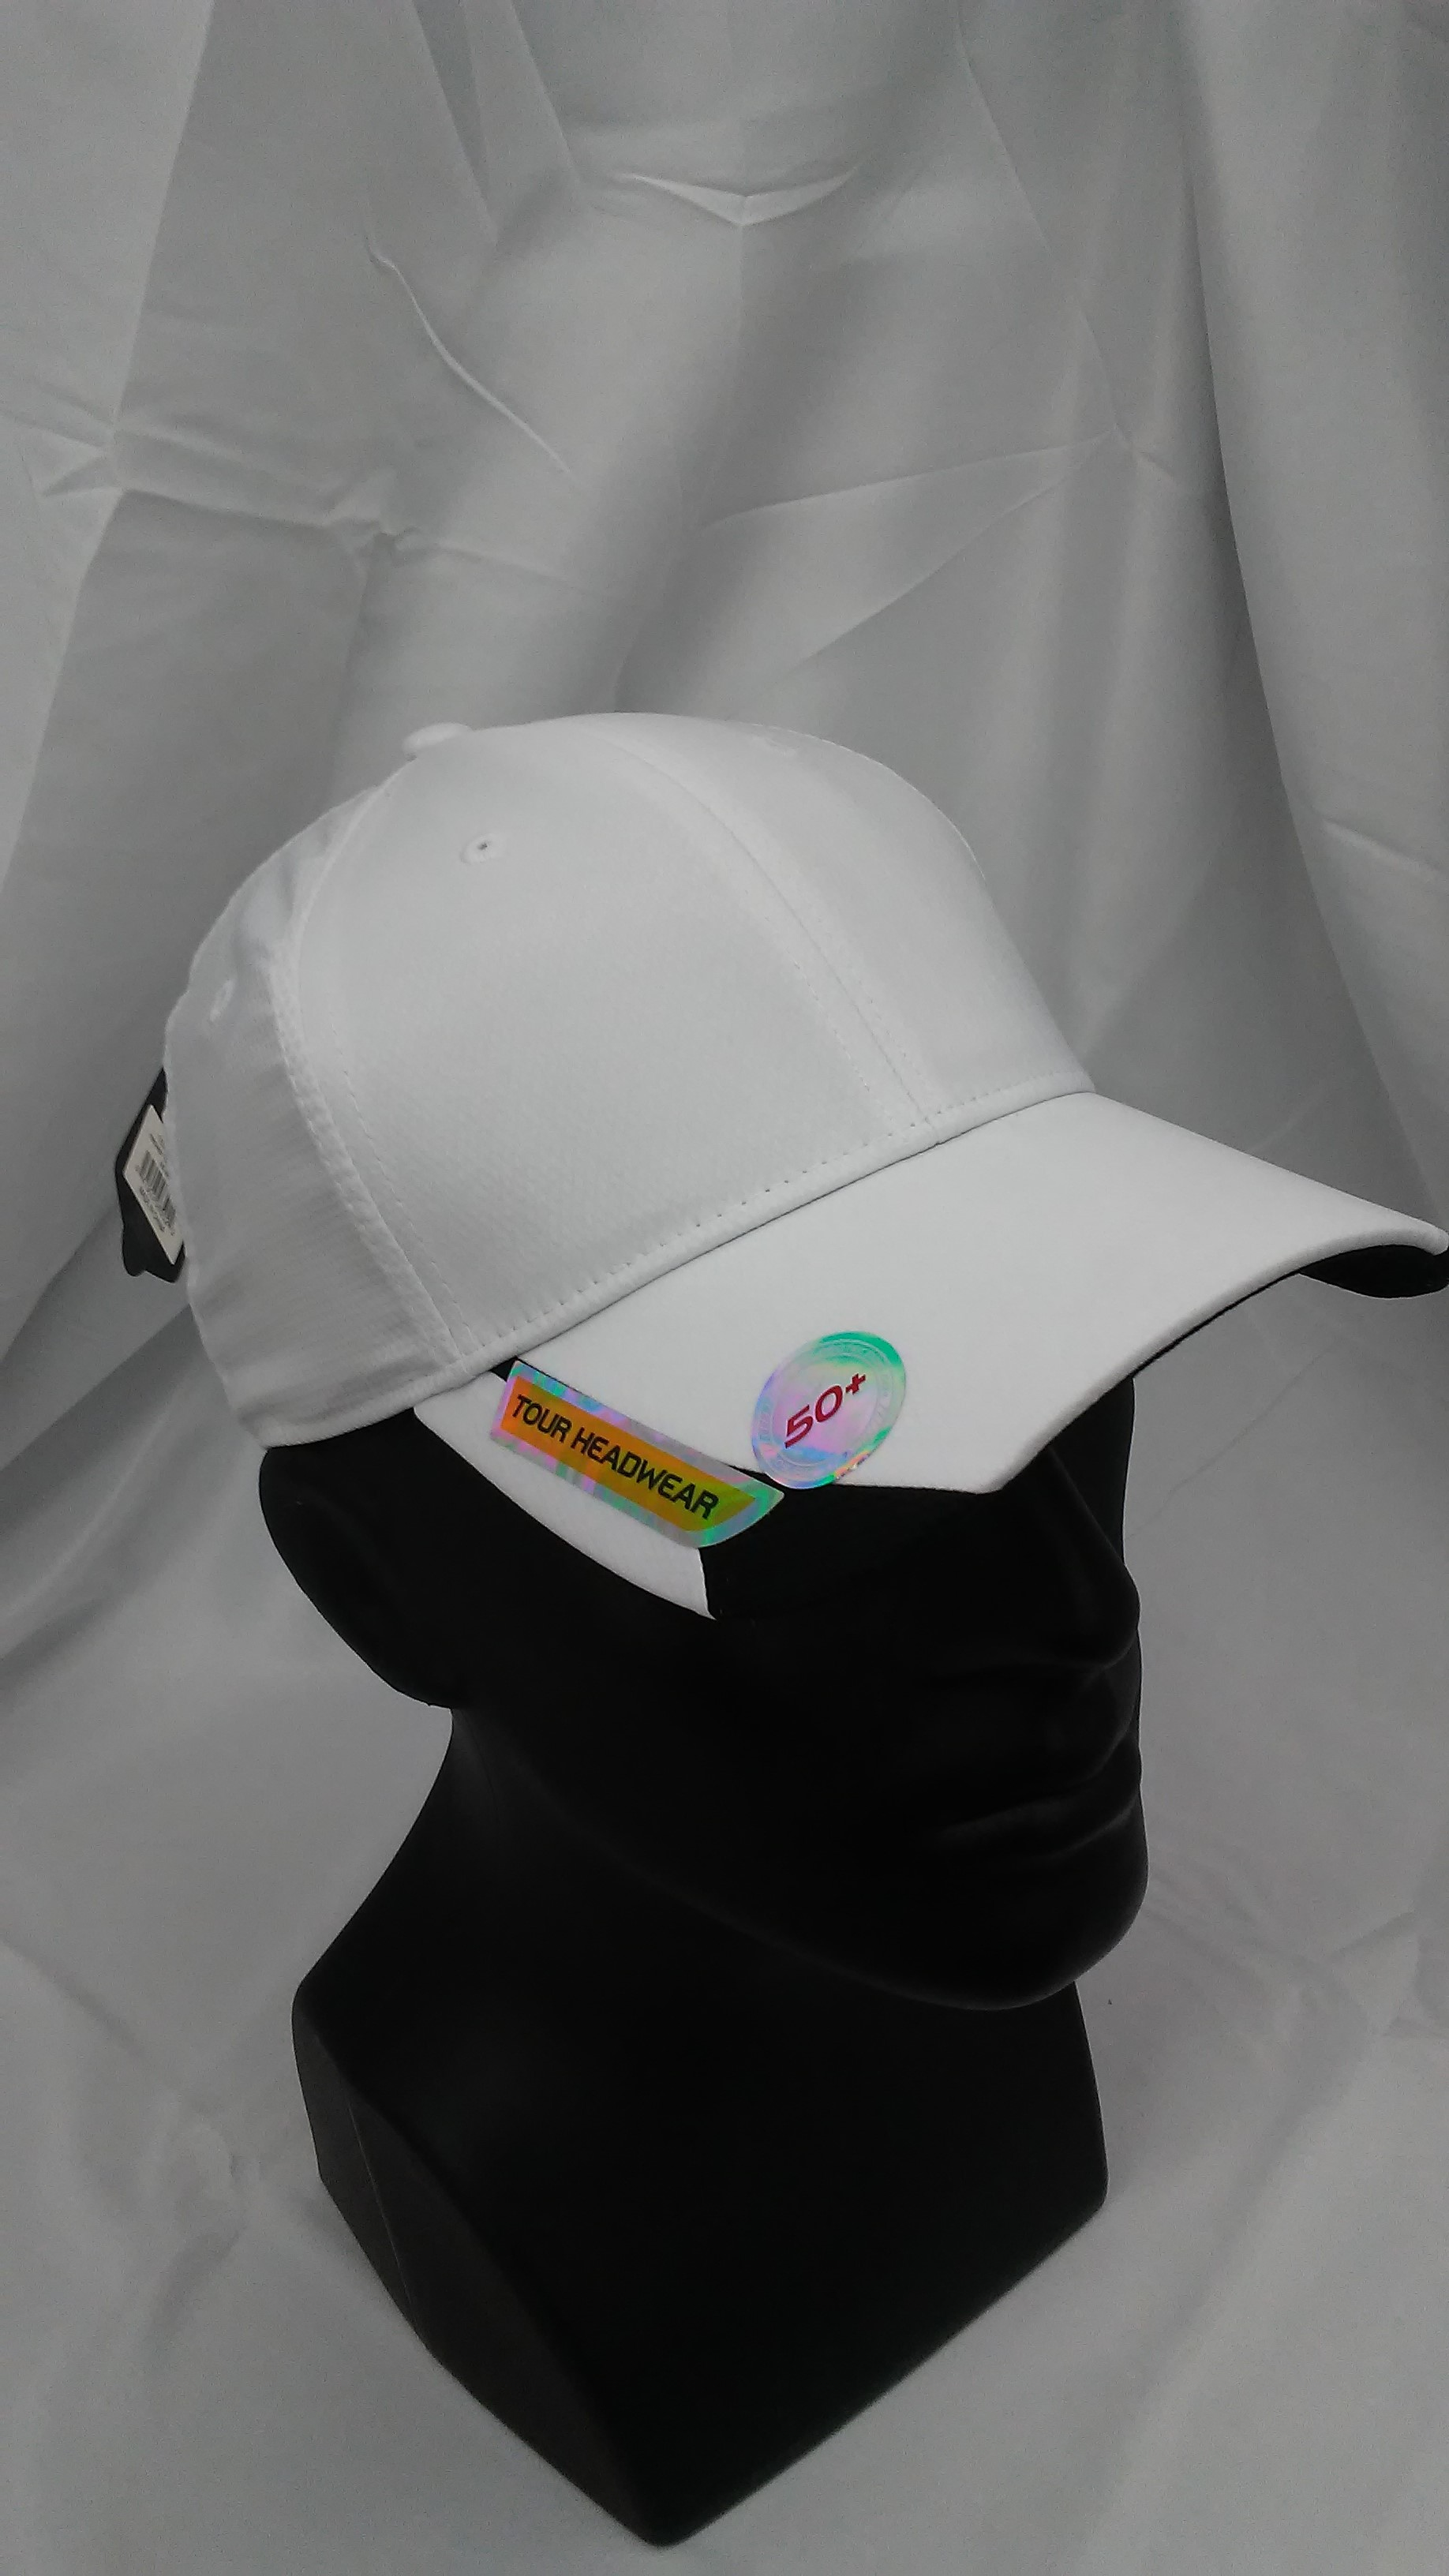 Visit our eBay Store for more great deals  Hurricane Golf New Taylormade  Golf Custom Split 3 Adjustable White Hat UPF 50+ Protection BUY IT NOW   2.99! 0f4ca3b0a0f